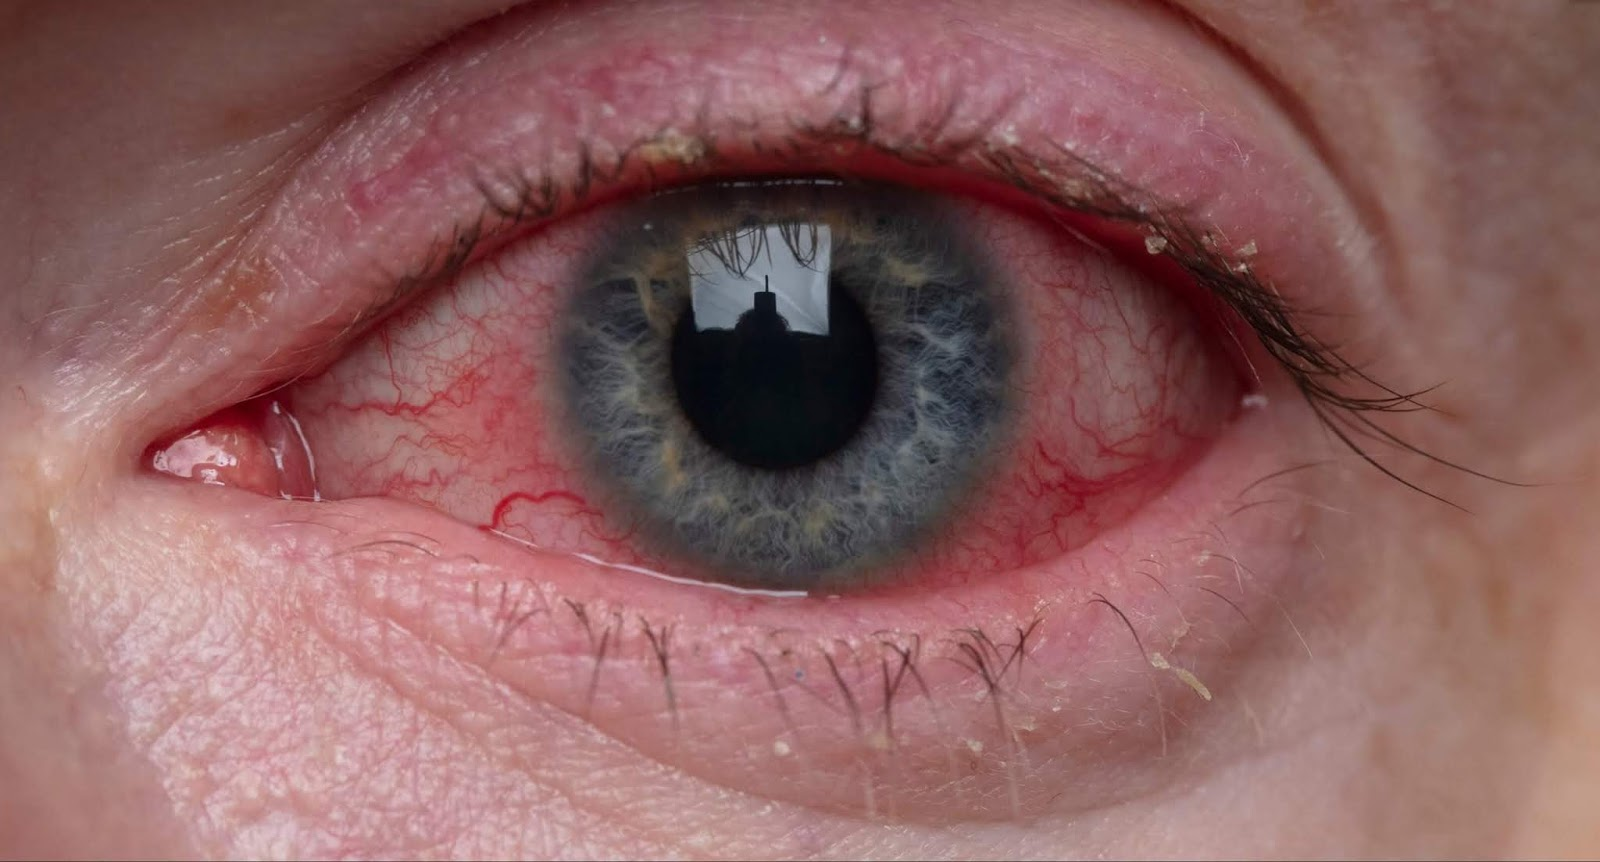 Red eye and COVID-19